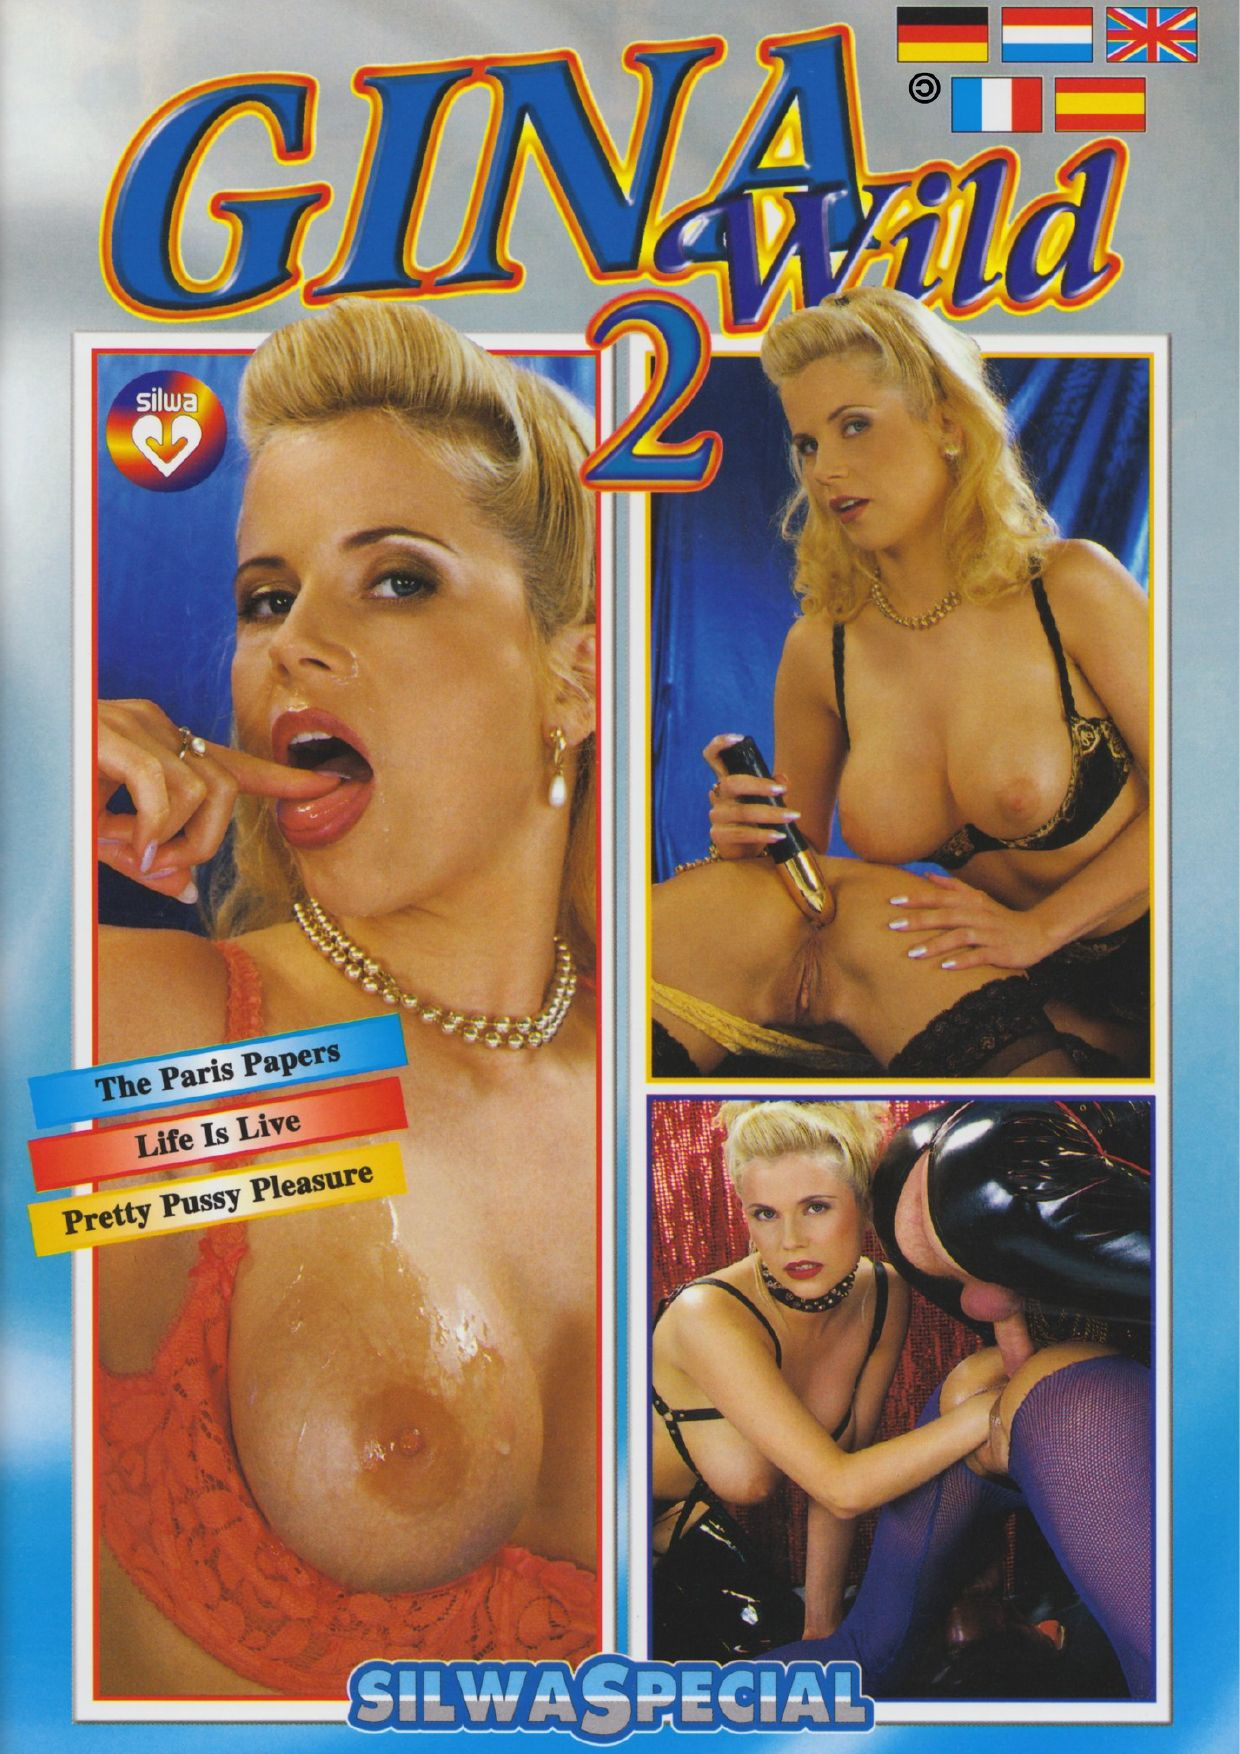 retro-porno-iz-germanii